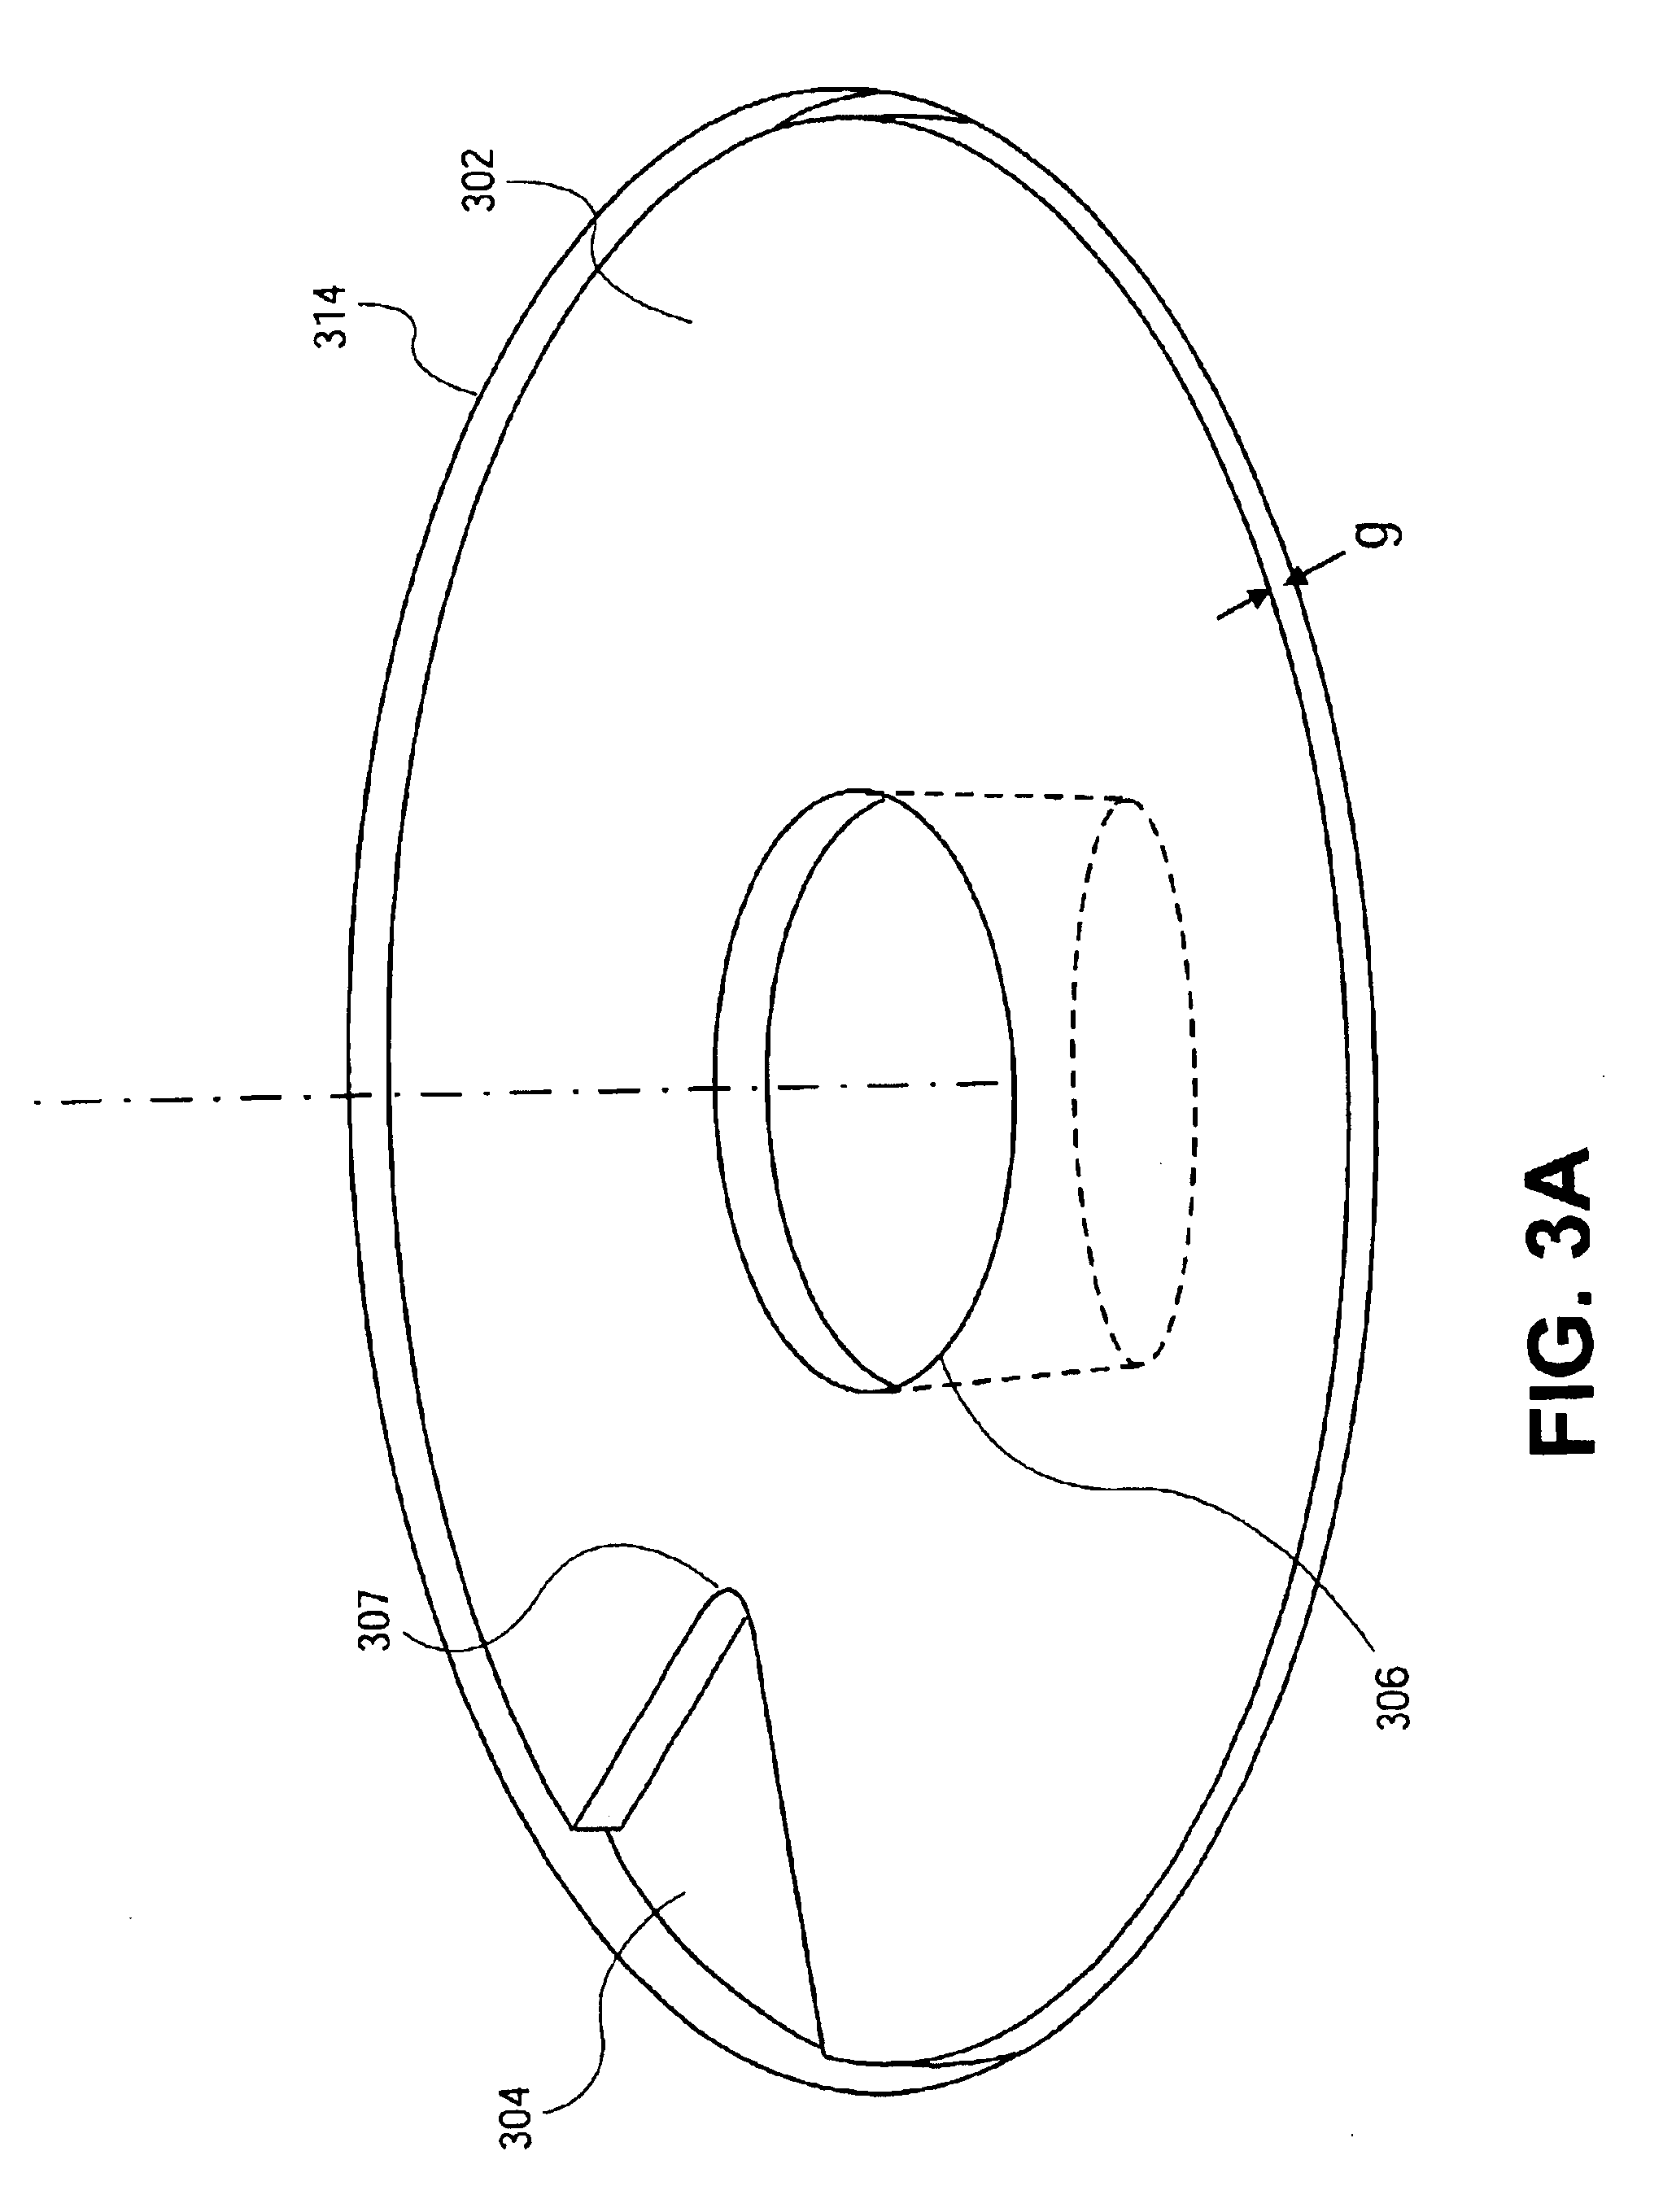 patent us6787443 - pcb design and method for providing vented blind vias